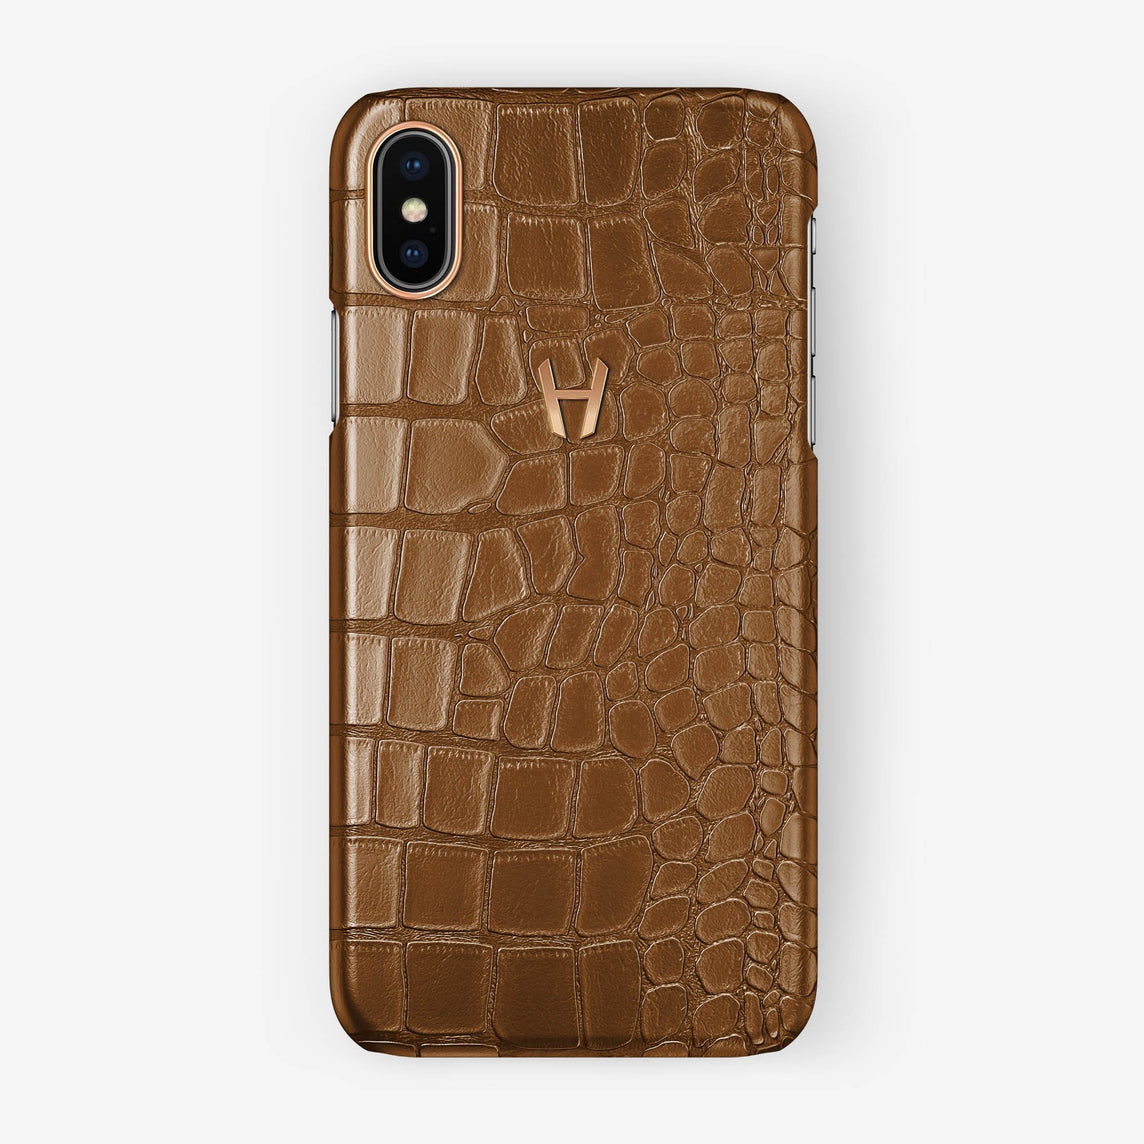 Alligator [iPhone Case] [model:iphone-xsmax-case] [colour:cognac] [finishing:rose-gold] - Hadoro